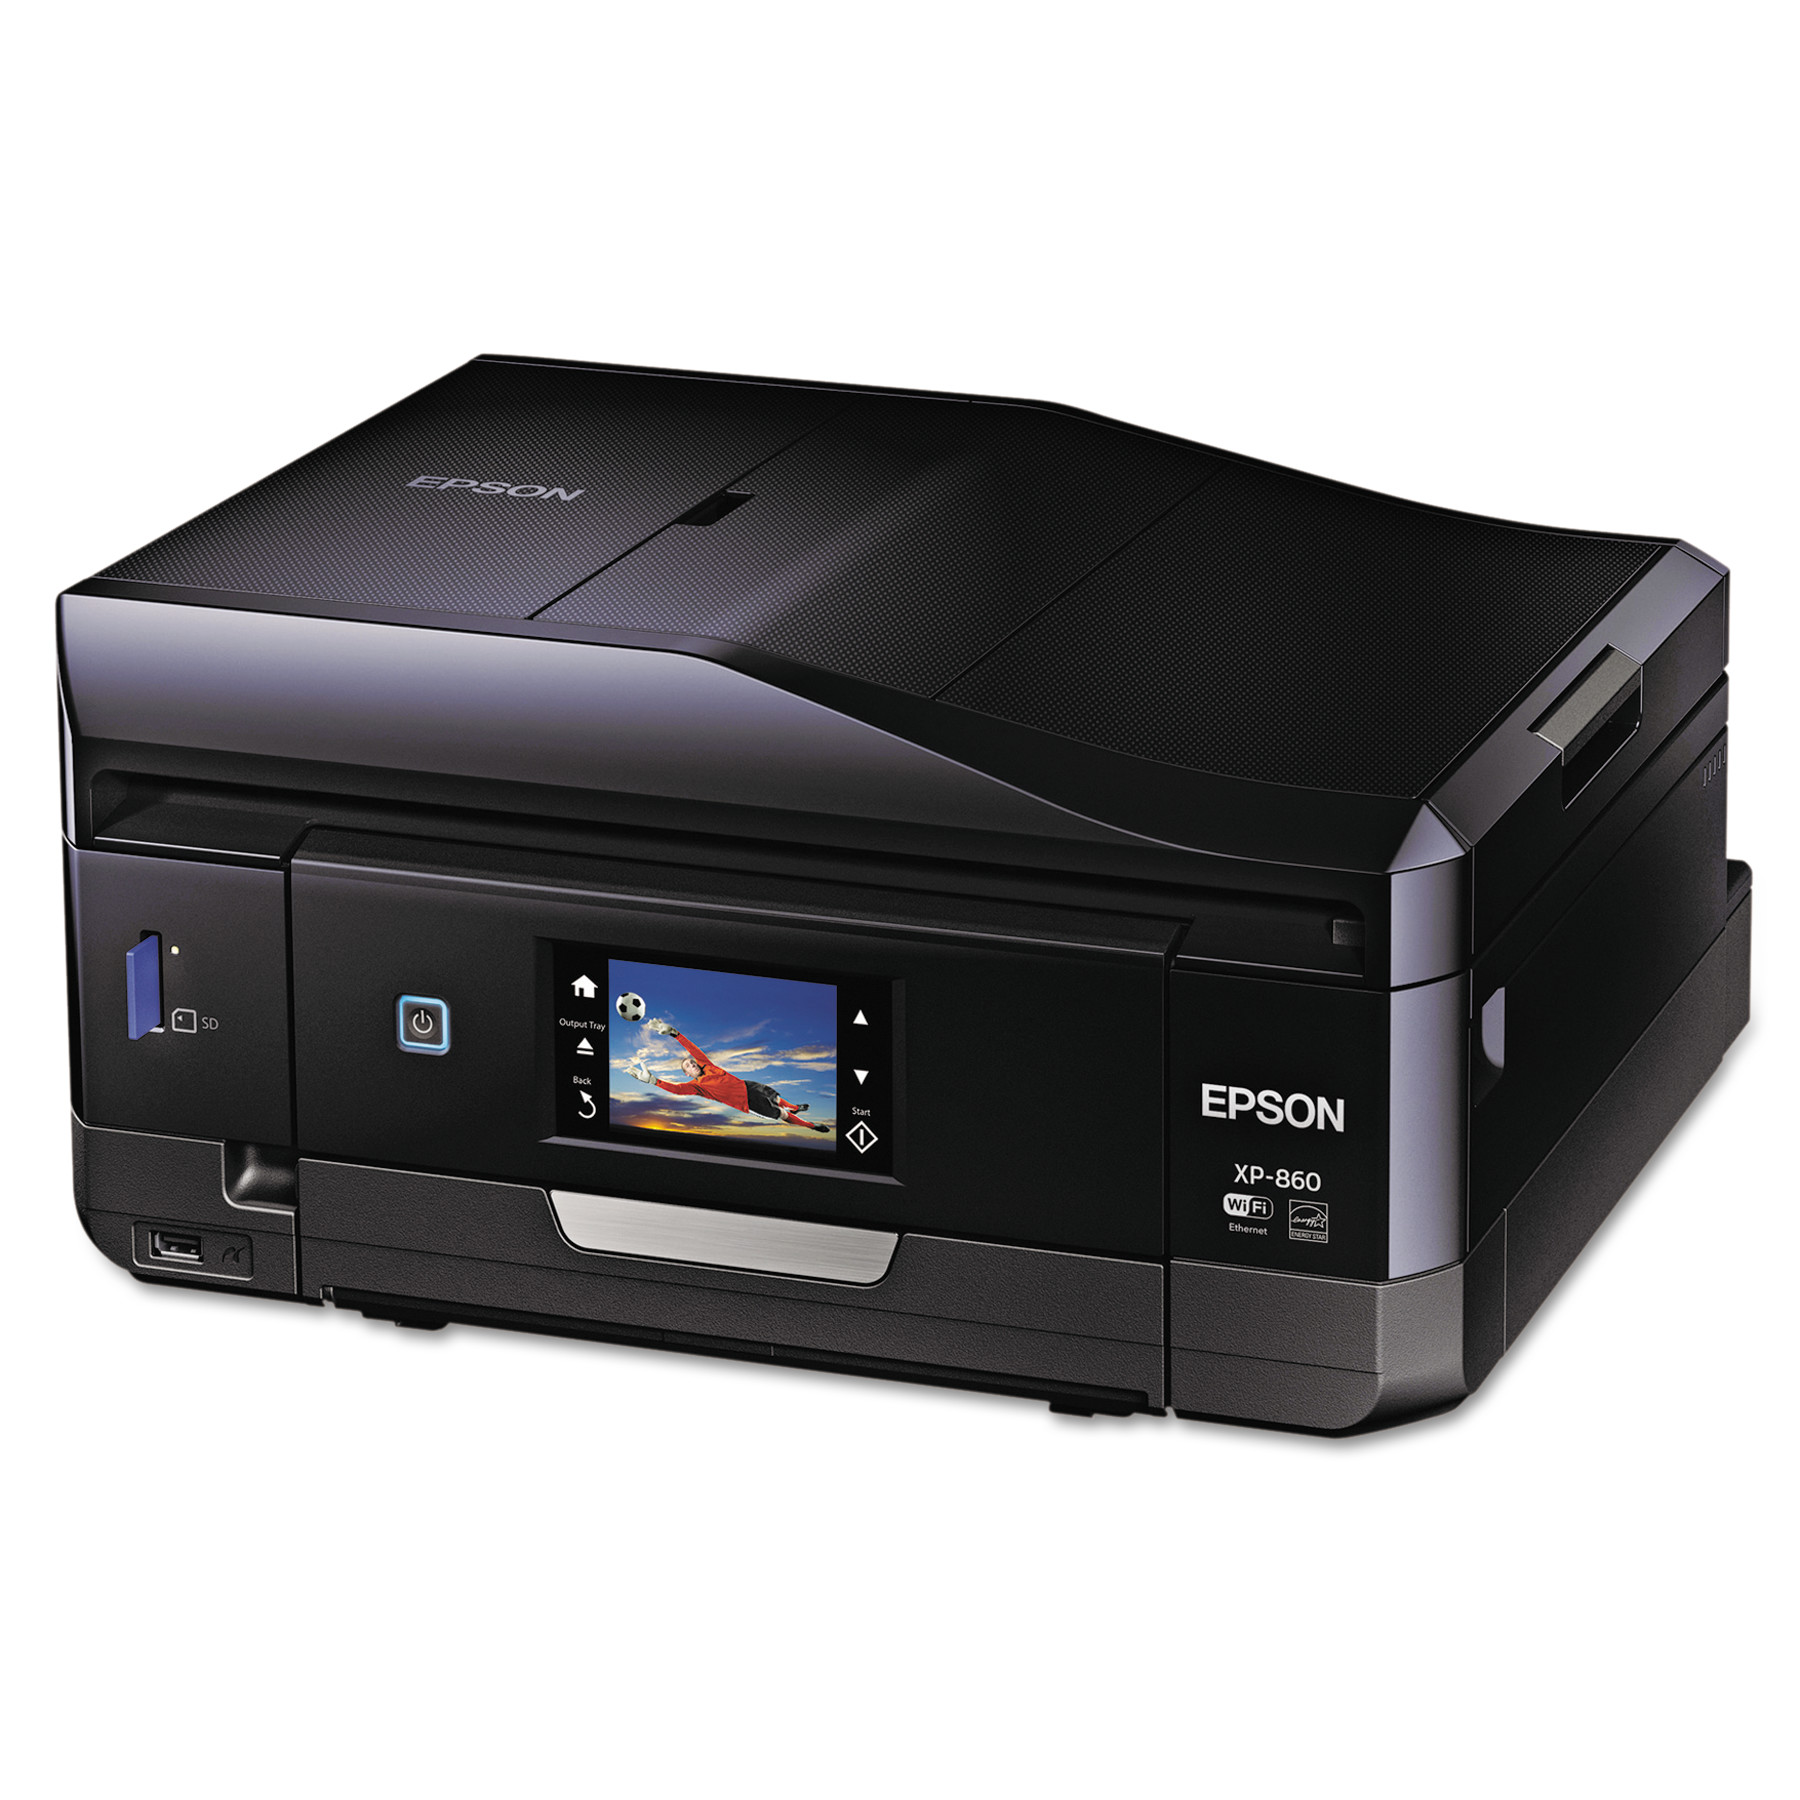 Epson Expression Premium XP-860 Wireless Small-in-One Inkjet Printer, Copy Print Scan by Epson